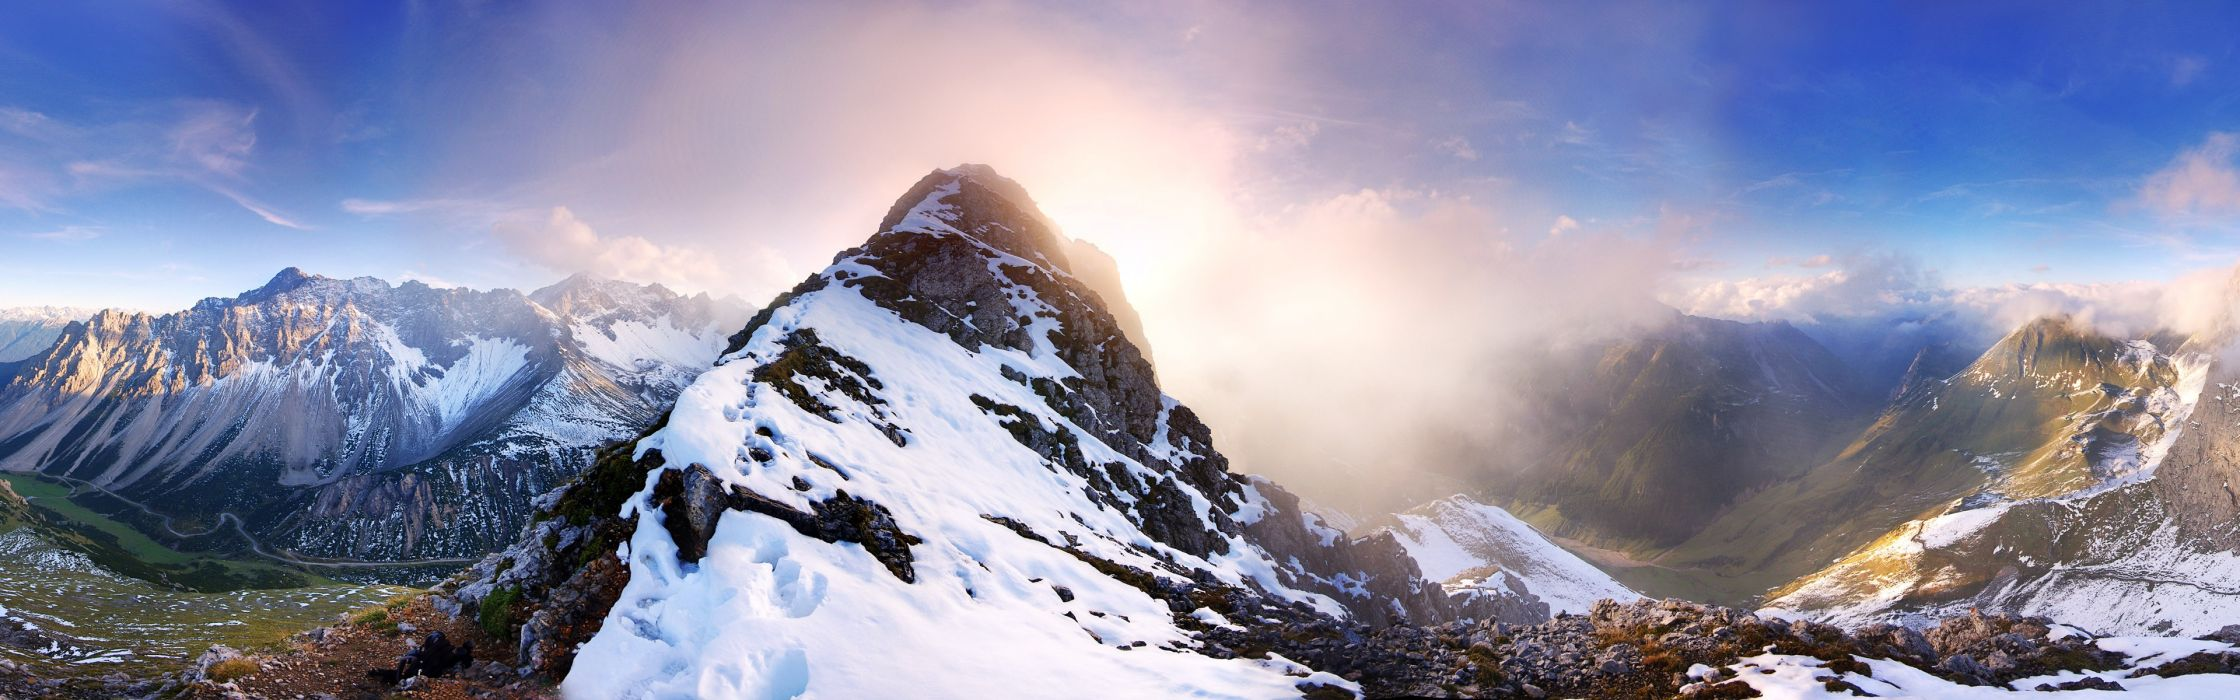 mountains landscapes snow Austria panorama wallpaper